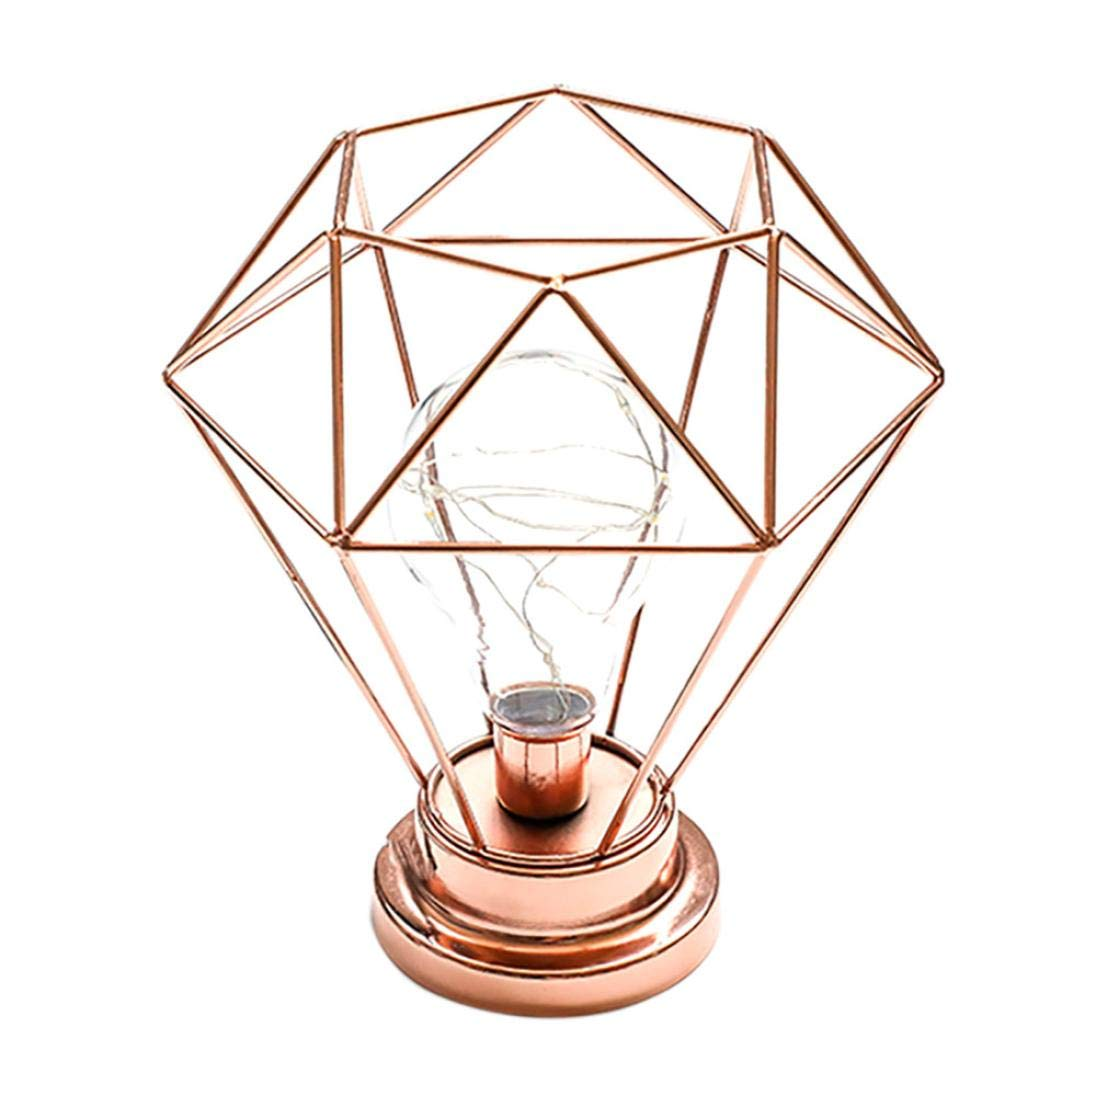 Sonmer Creative Diamond Iron Frame Photography Prop Desk Lamp, for Bedroom Decoration (Rose Gold)